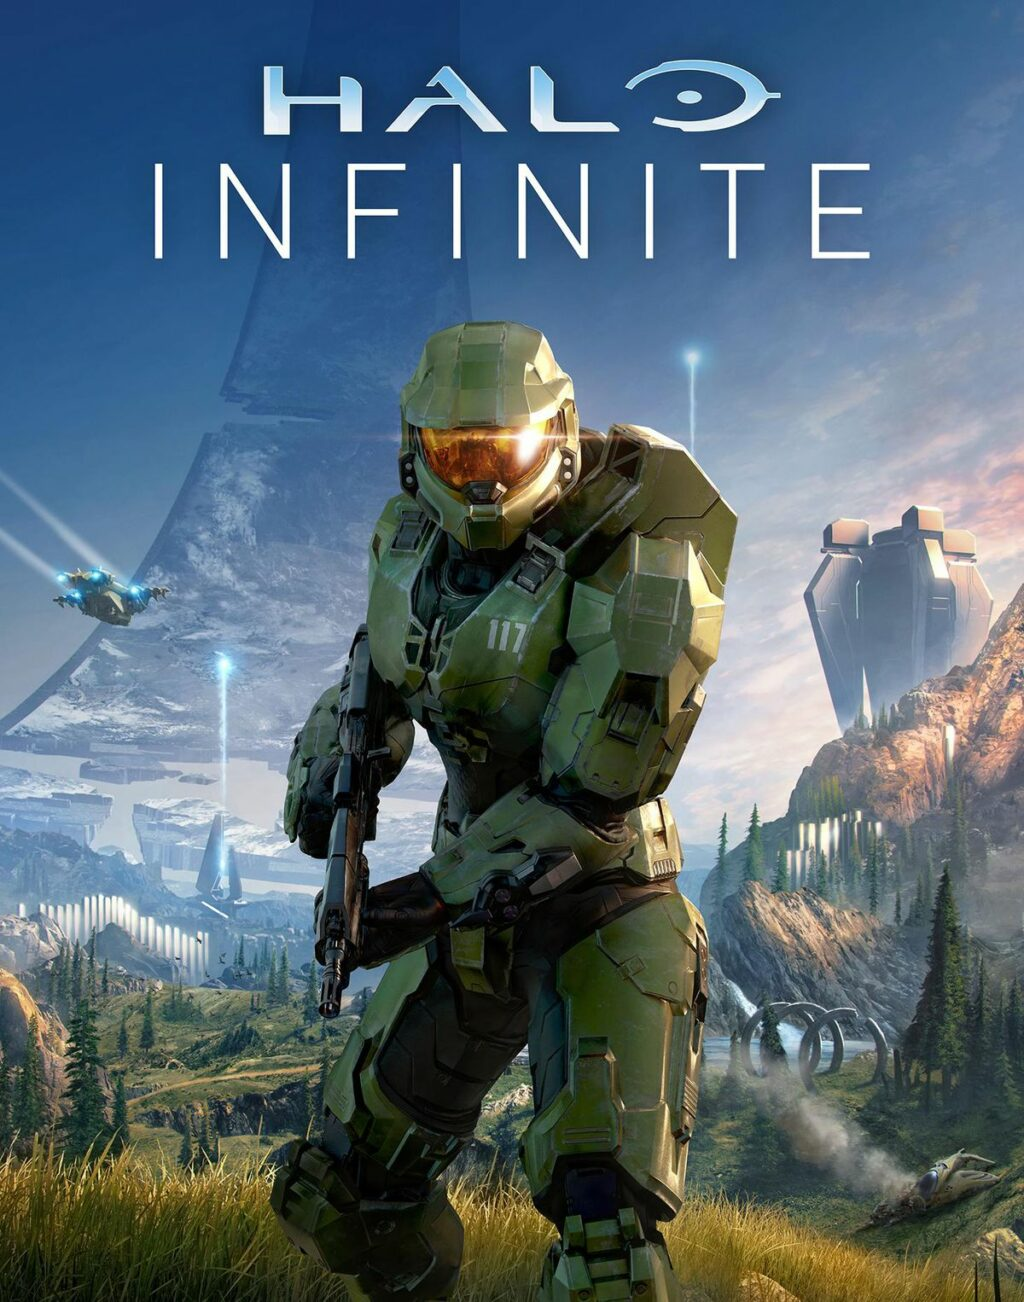 'Halo Infinite' Box Art All But Confirms Master Chief Is Getting A Grappling Hook